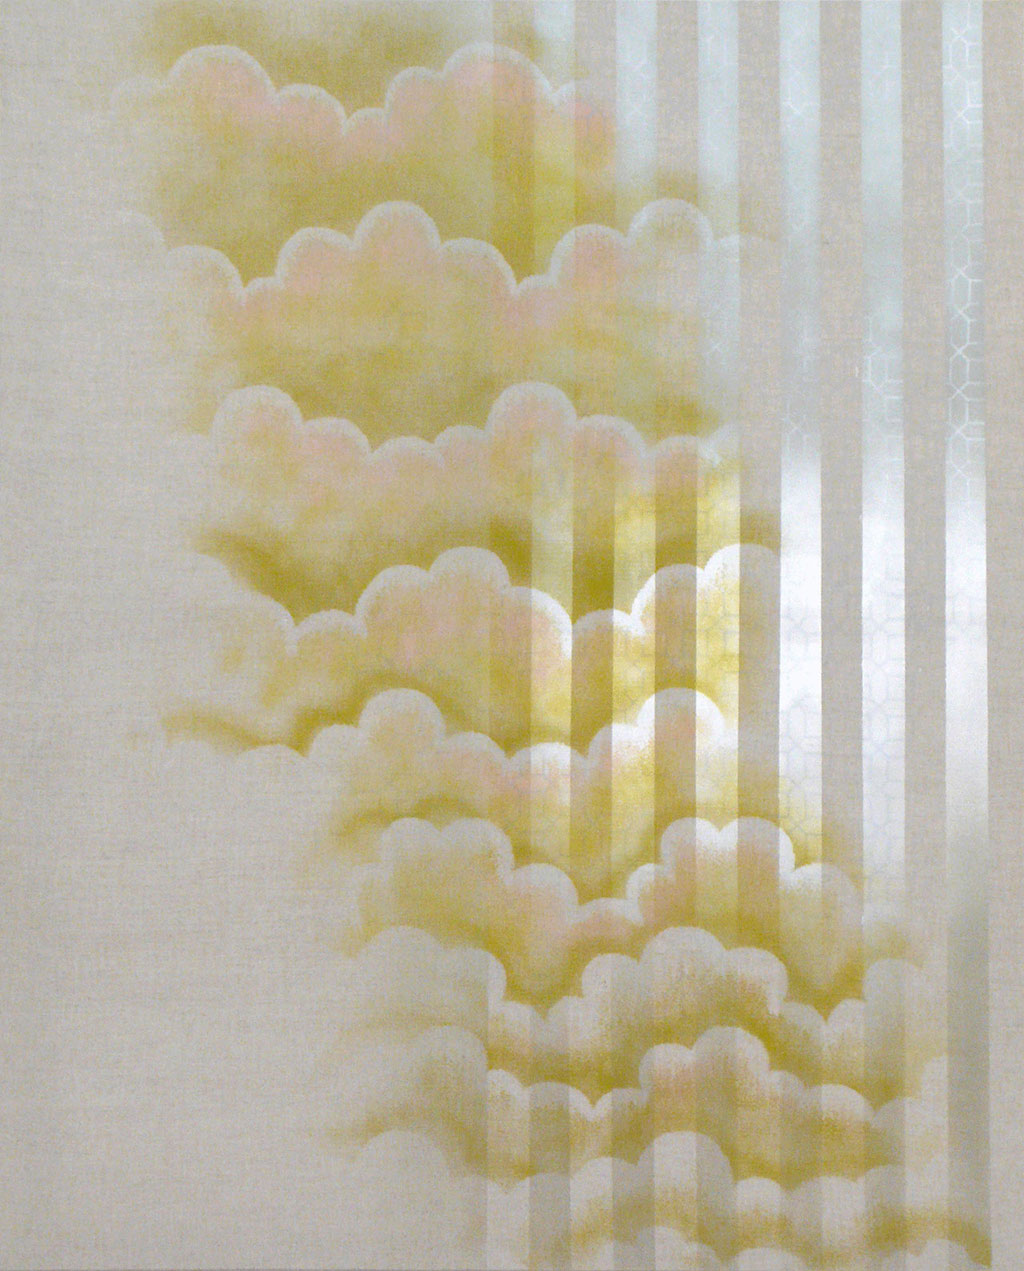 Clouds and stripes and where does that light come from?, 2010, Spray paint on linen, 155 x 125 cm